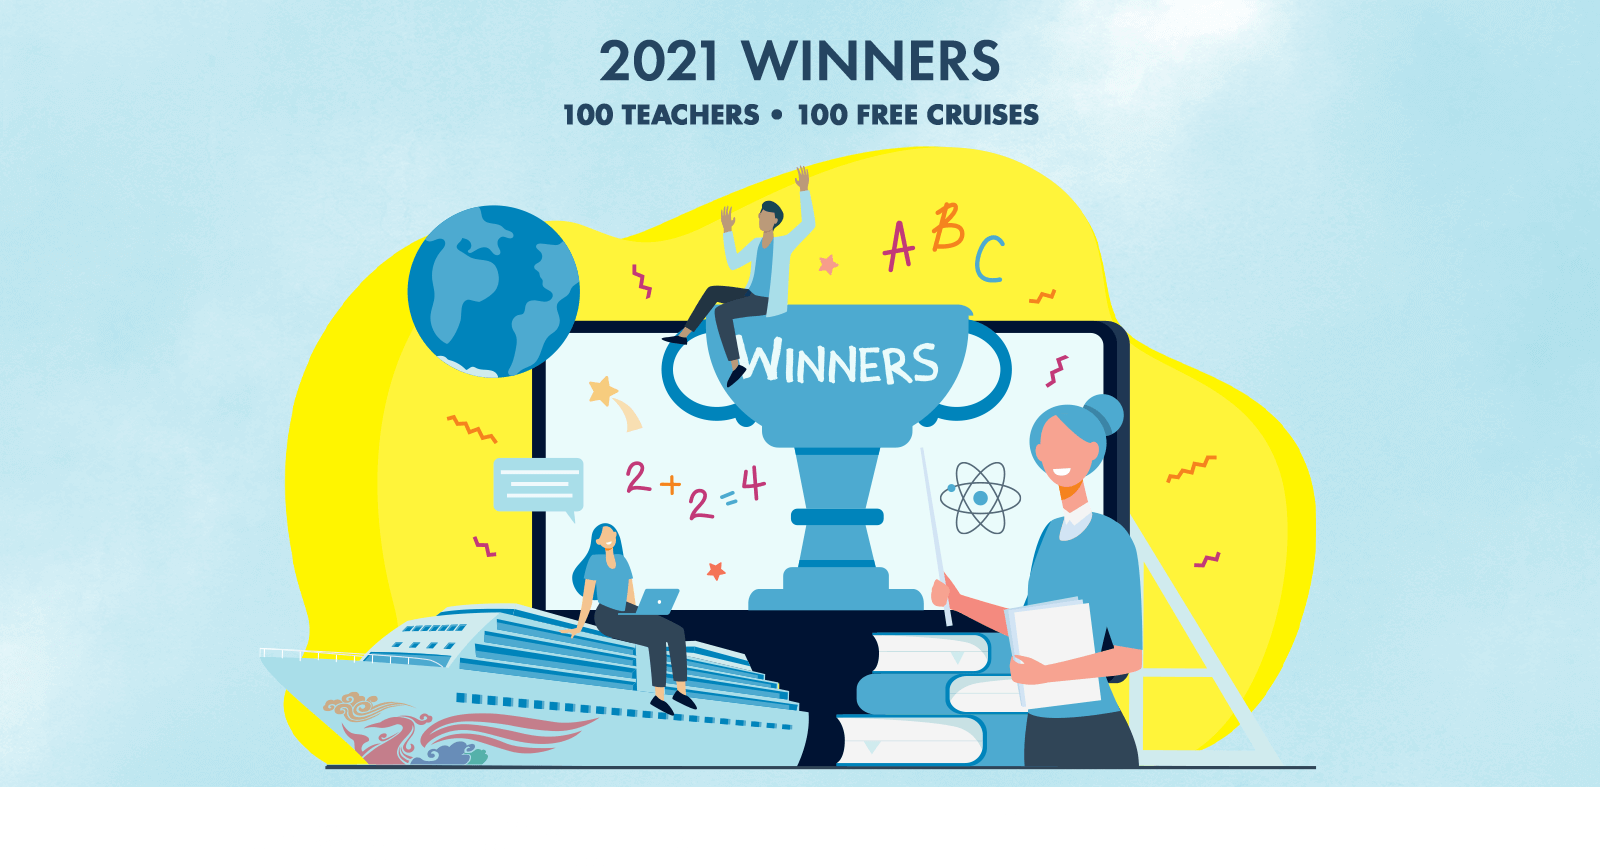 Norwegian Cruise Line Announces 'Giving Joy' Winners And Awards $60,000 To Schools Across The U.S. (August 2021)